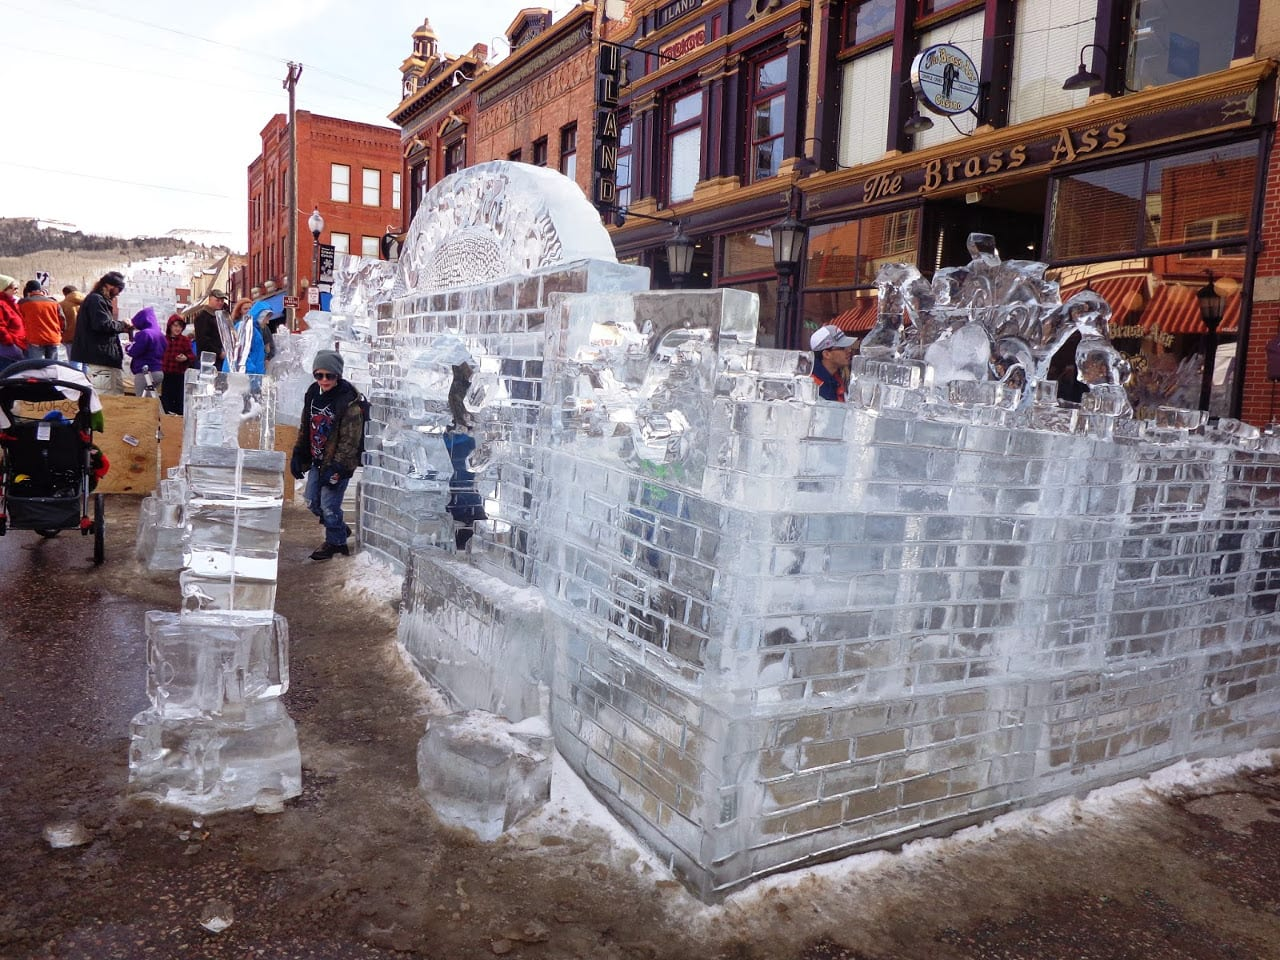 Ice Festival Cripple Creek 2020.Icy Sculptures At 13th Cripple Creek Ice Fest Cripple